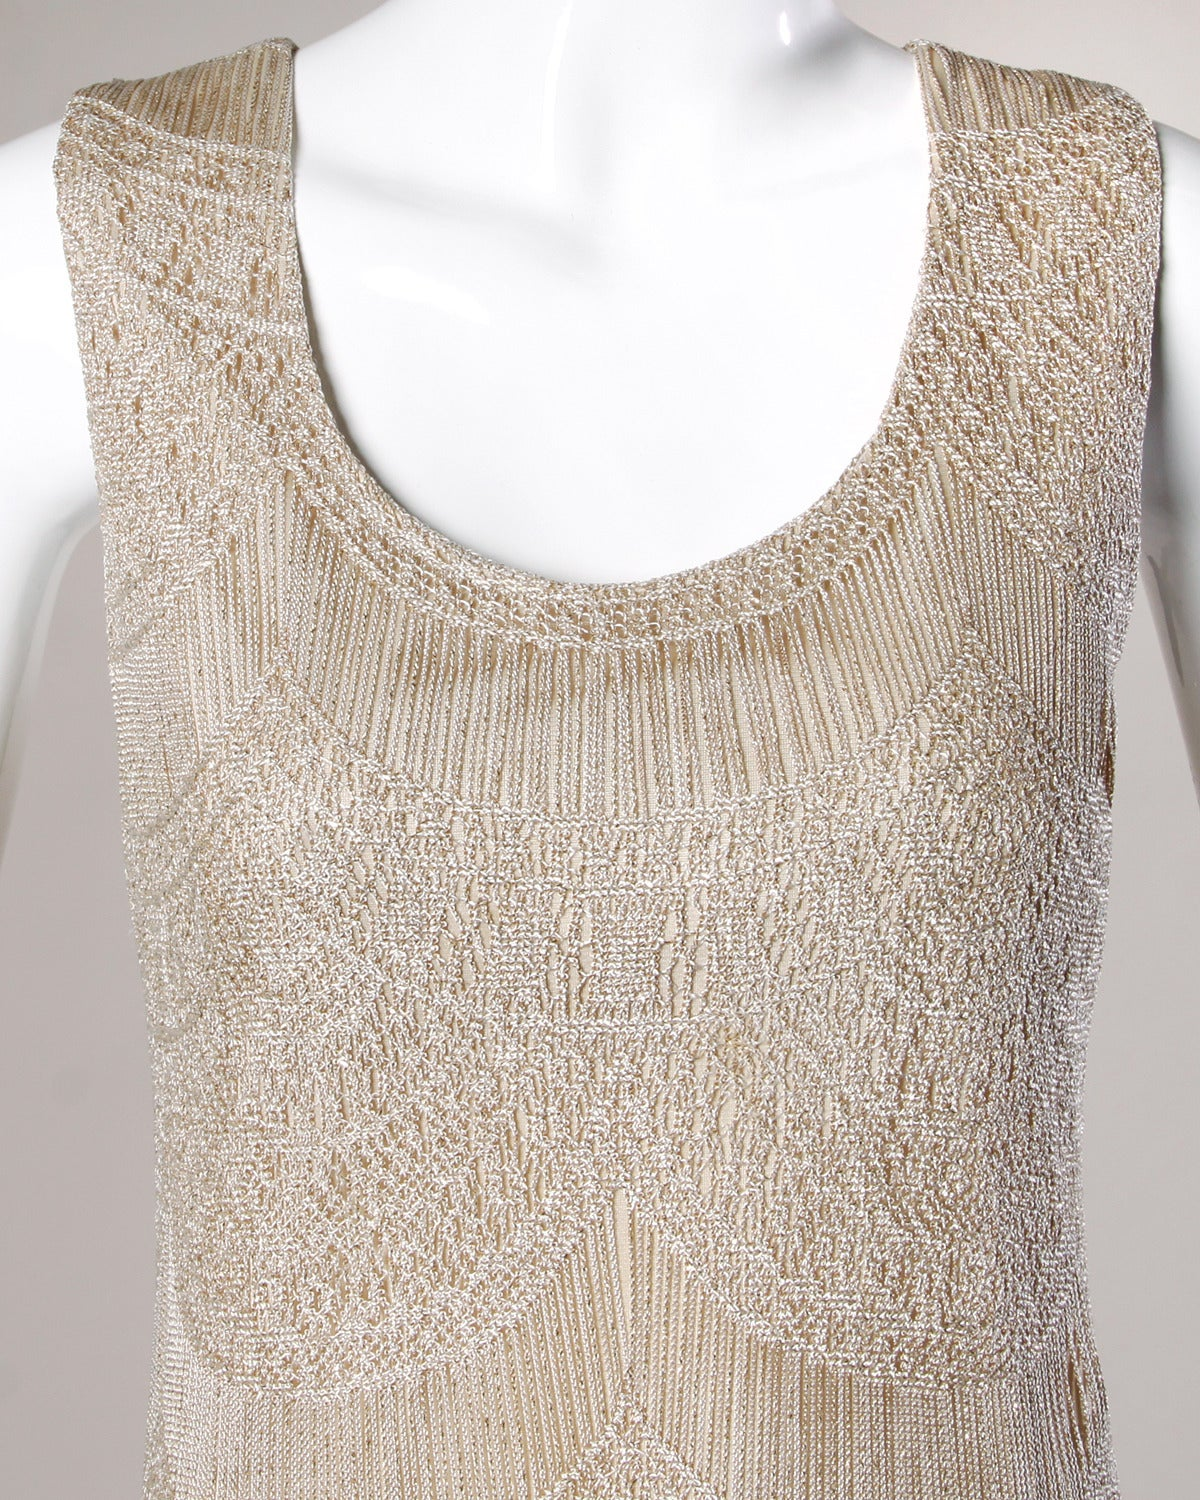 Lillie Rubin Vintage 1990s Metallic Scalloped Lace Flapper Dress 5